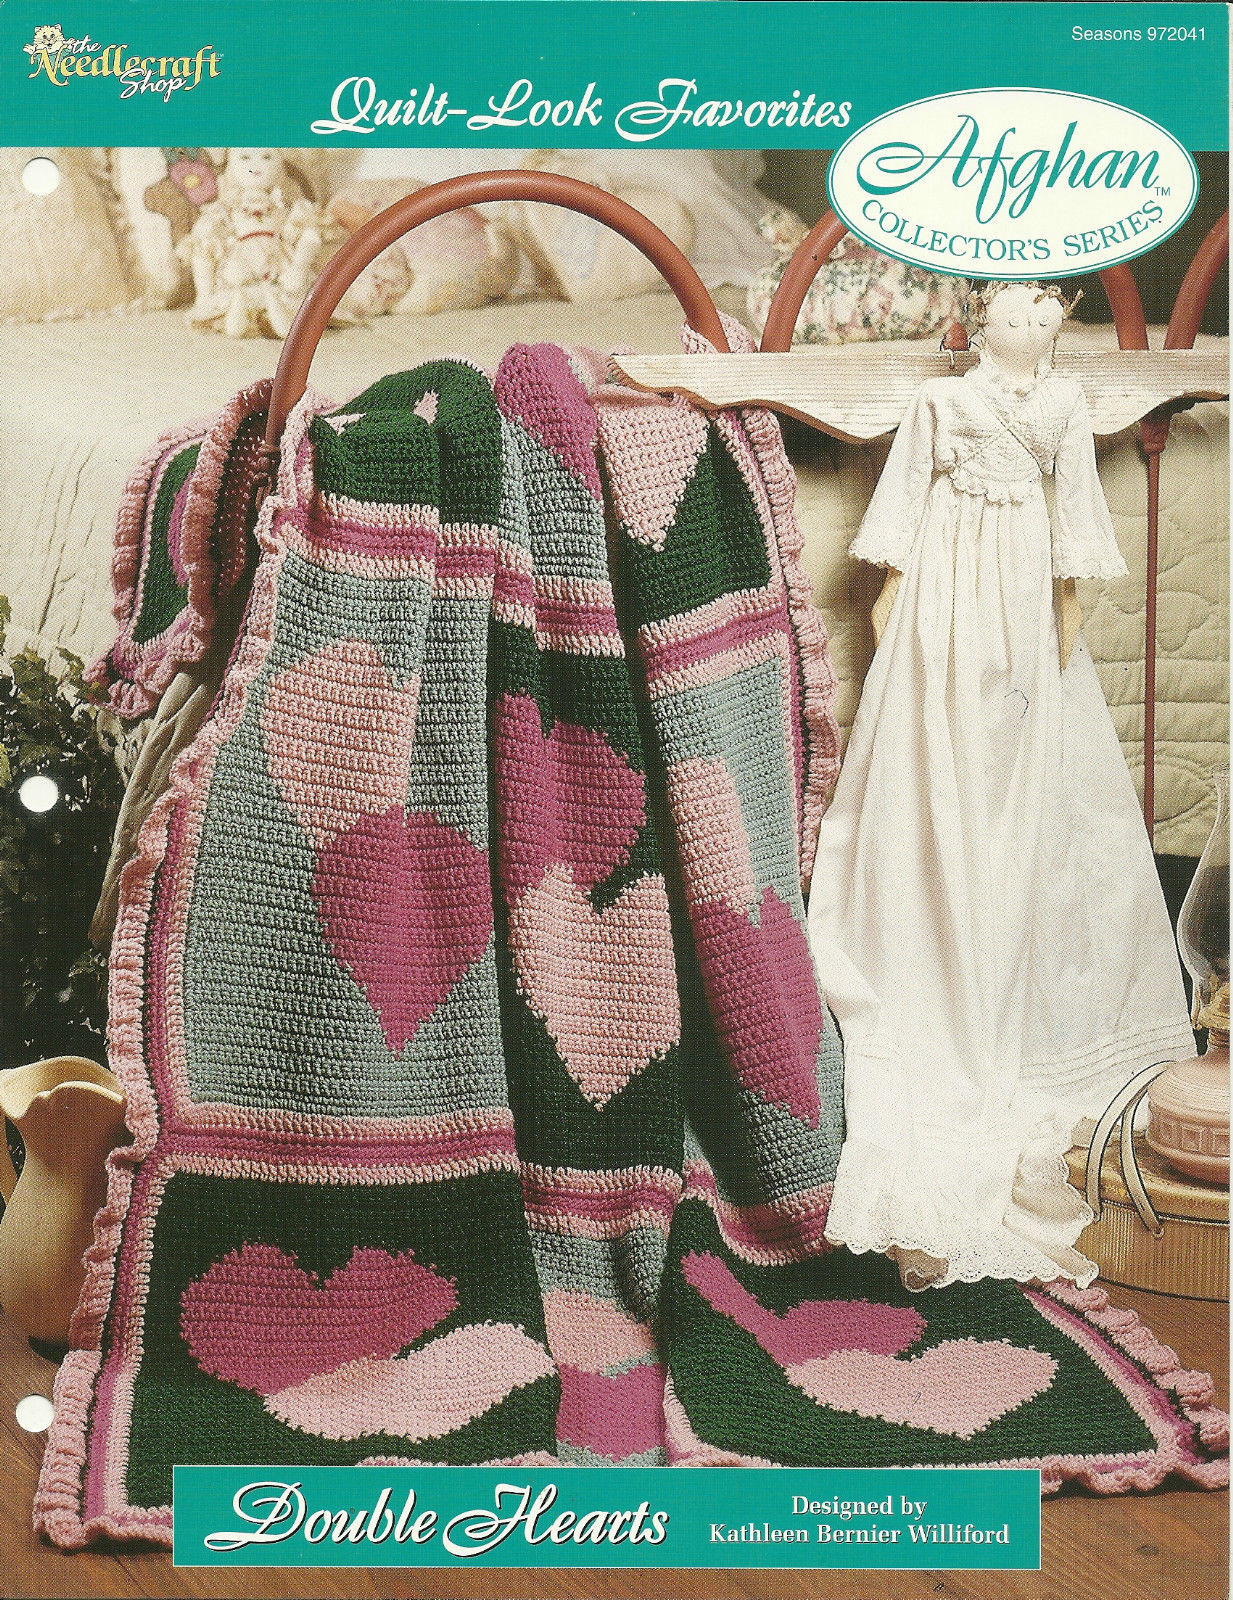 Needlecraft Shop Crochet Pattern 972041 Double Hearts Afghan Collectors Series